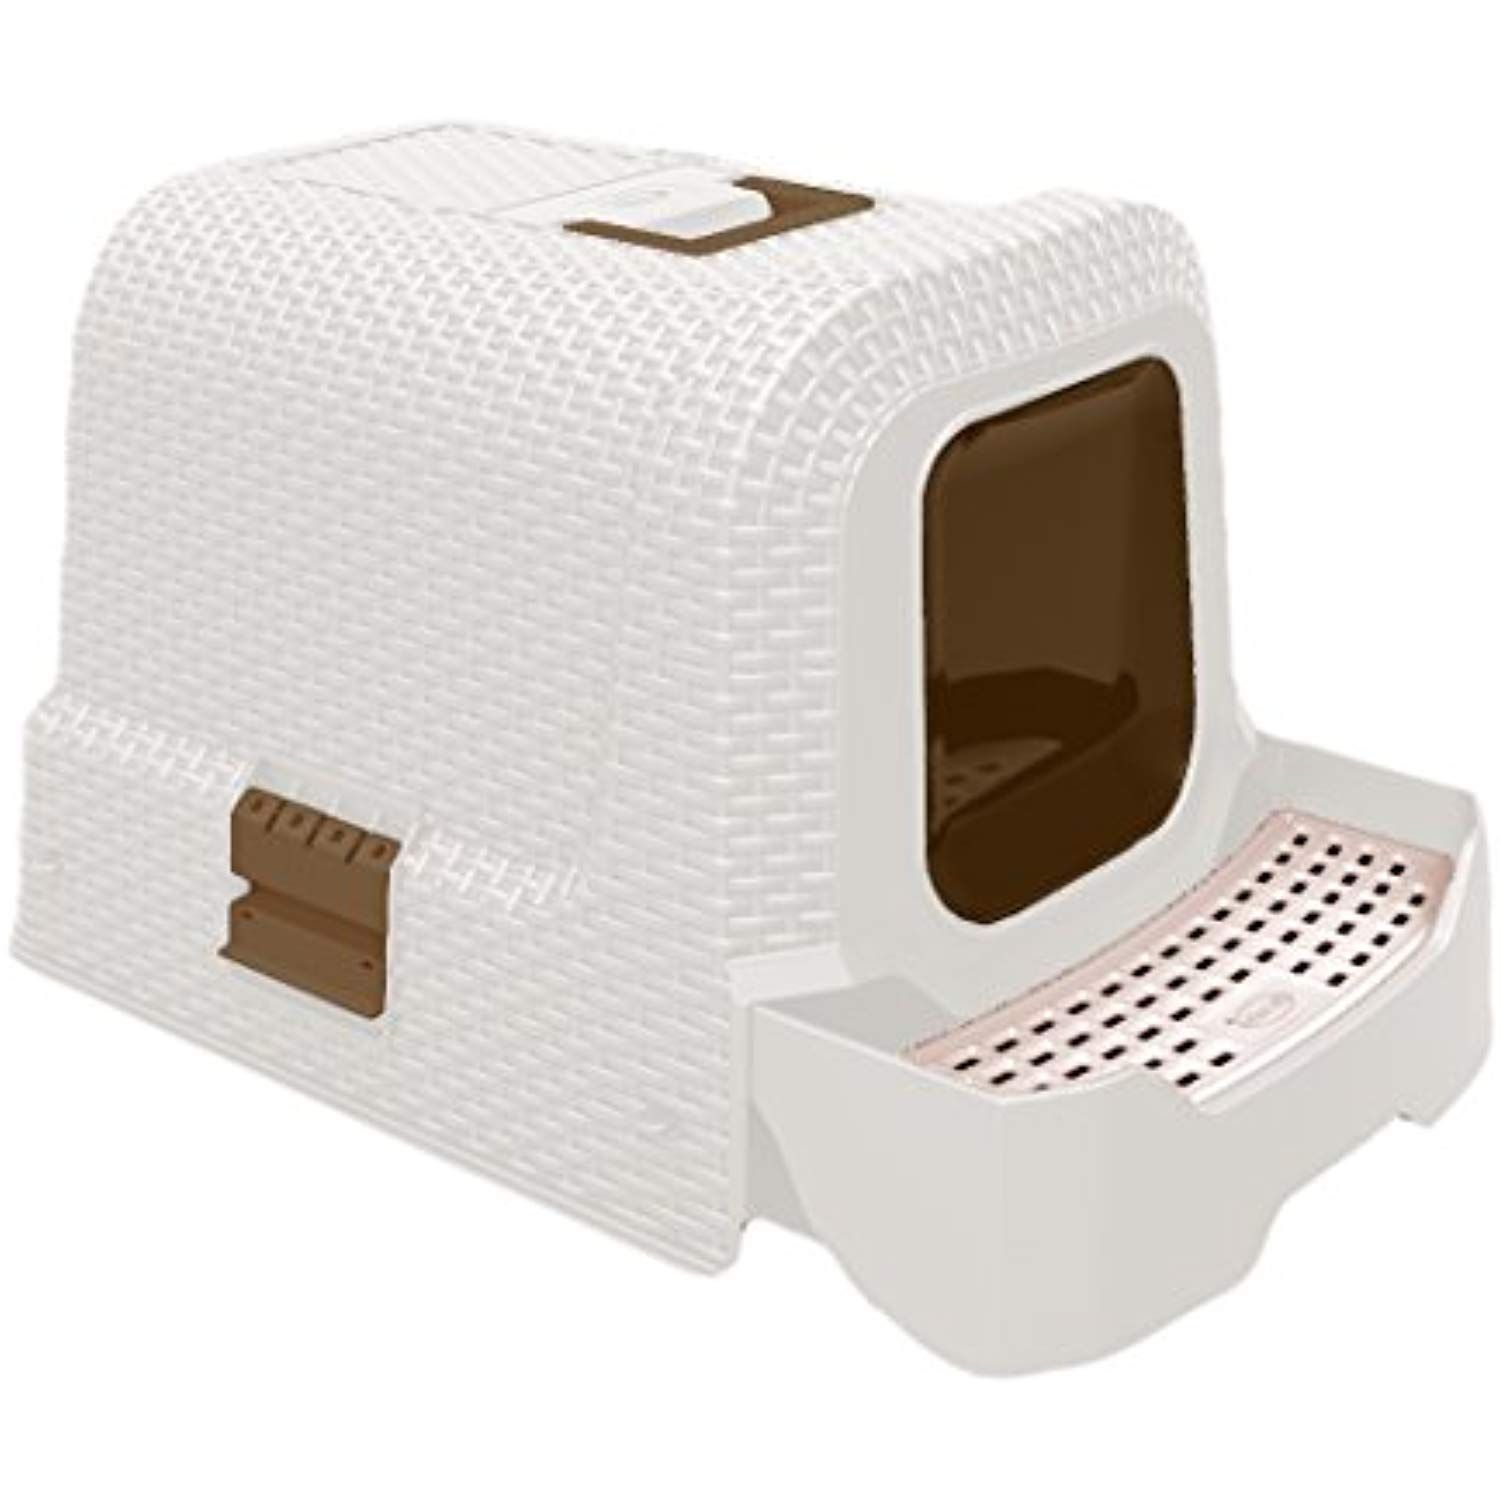 Deluxe Covered Litter Box With Removable Tray Scoop And Bags To View Further For This Item Visit The Image Link Thi Litter Box White Wicker Litter Tray